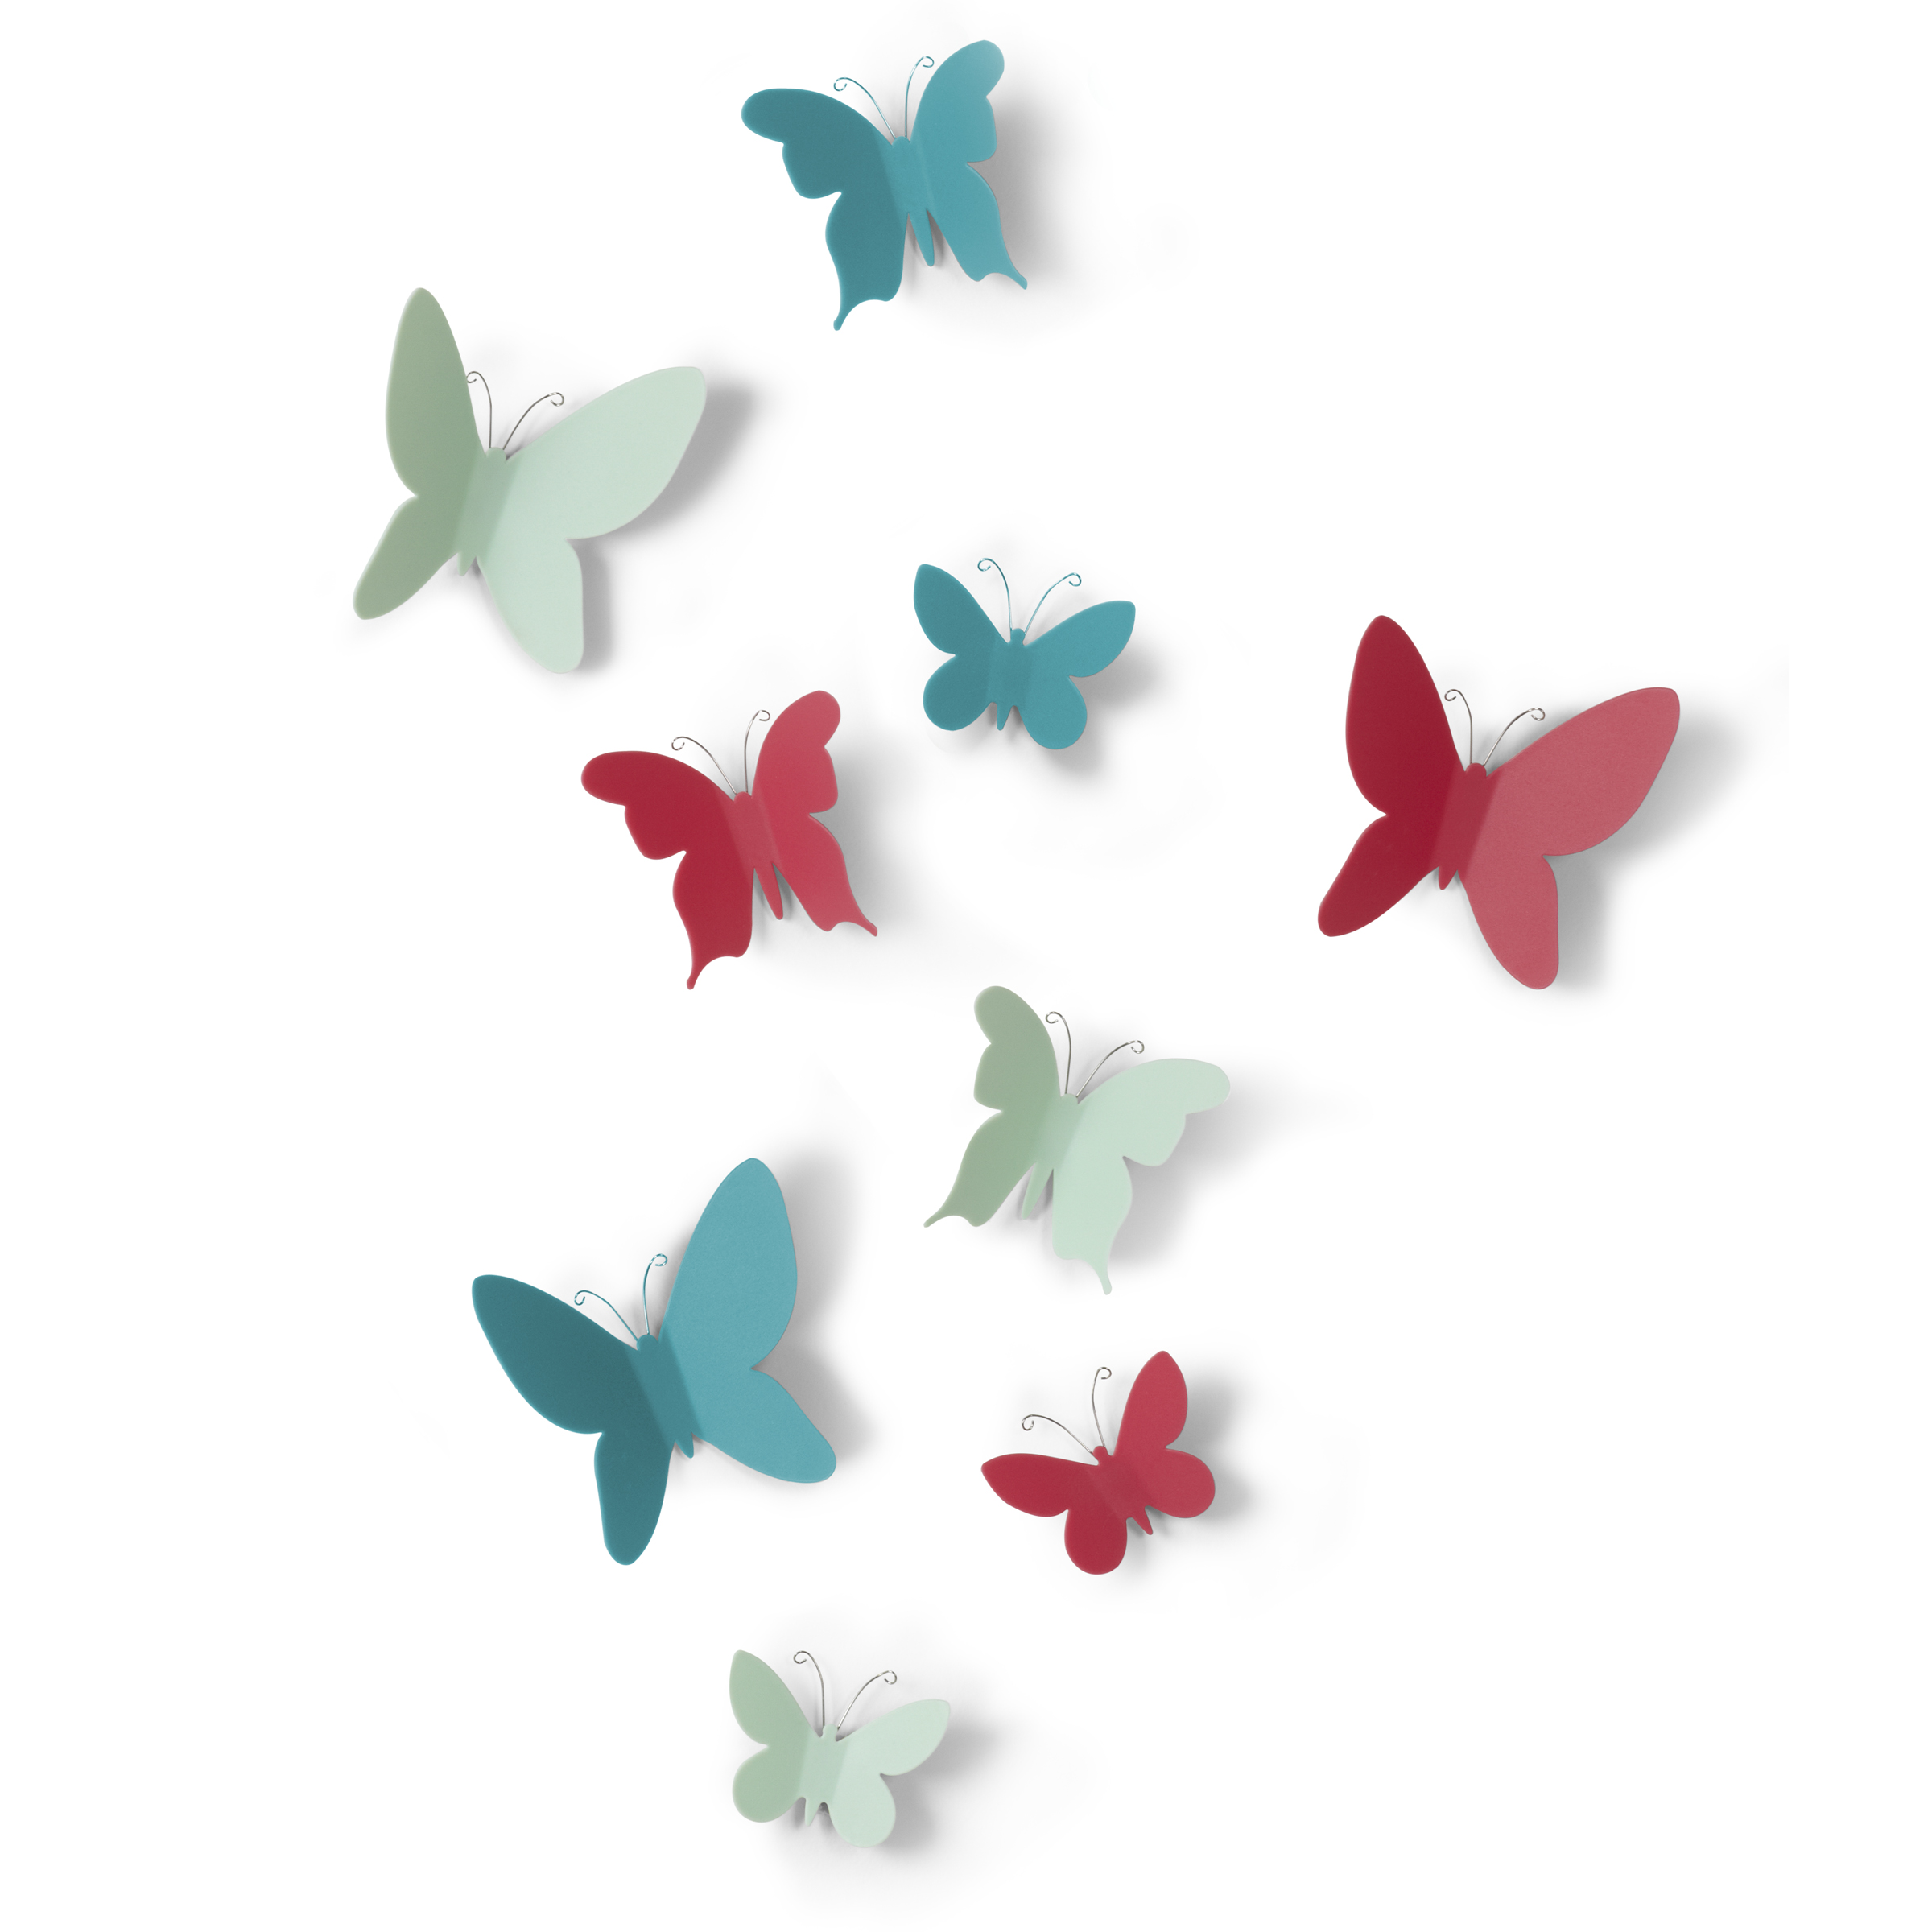 UMBRA MARIPOSA WALL DECOR (9) ASST